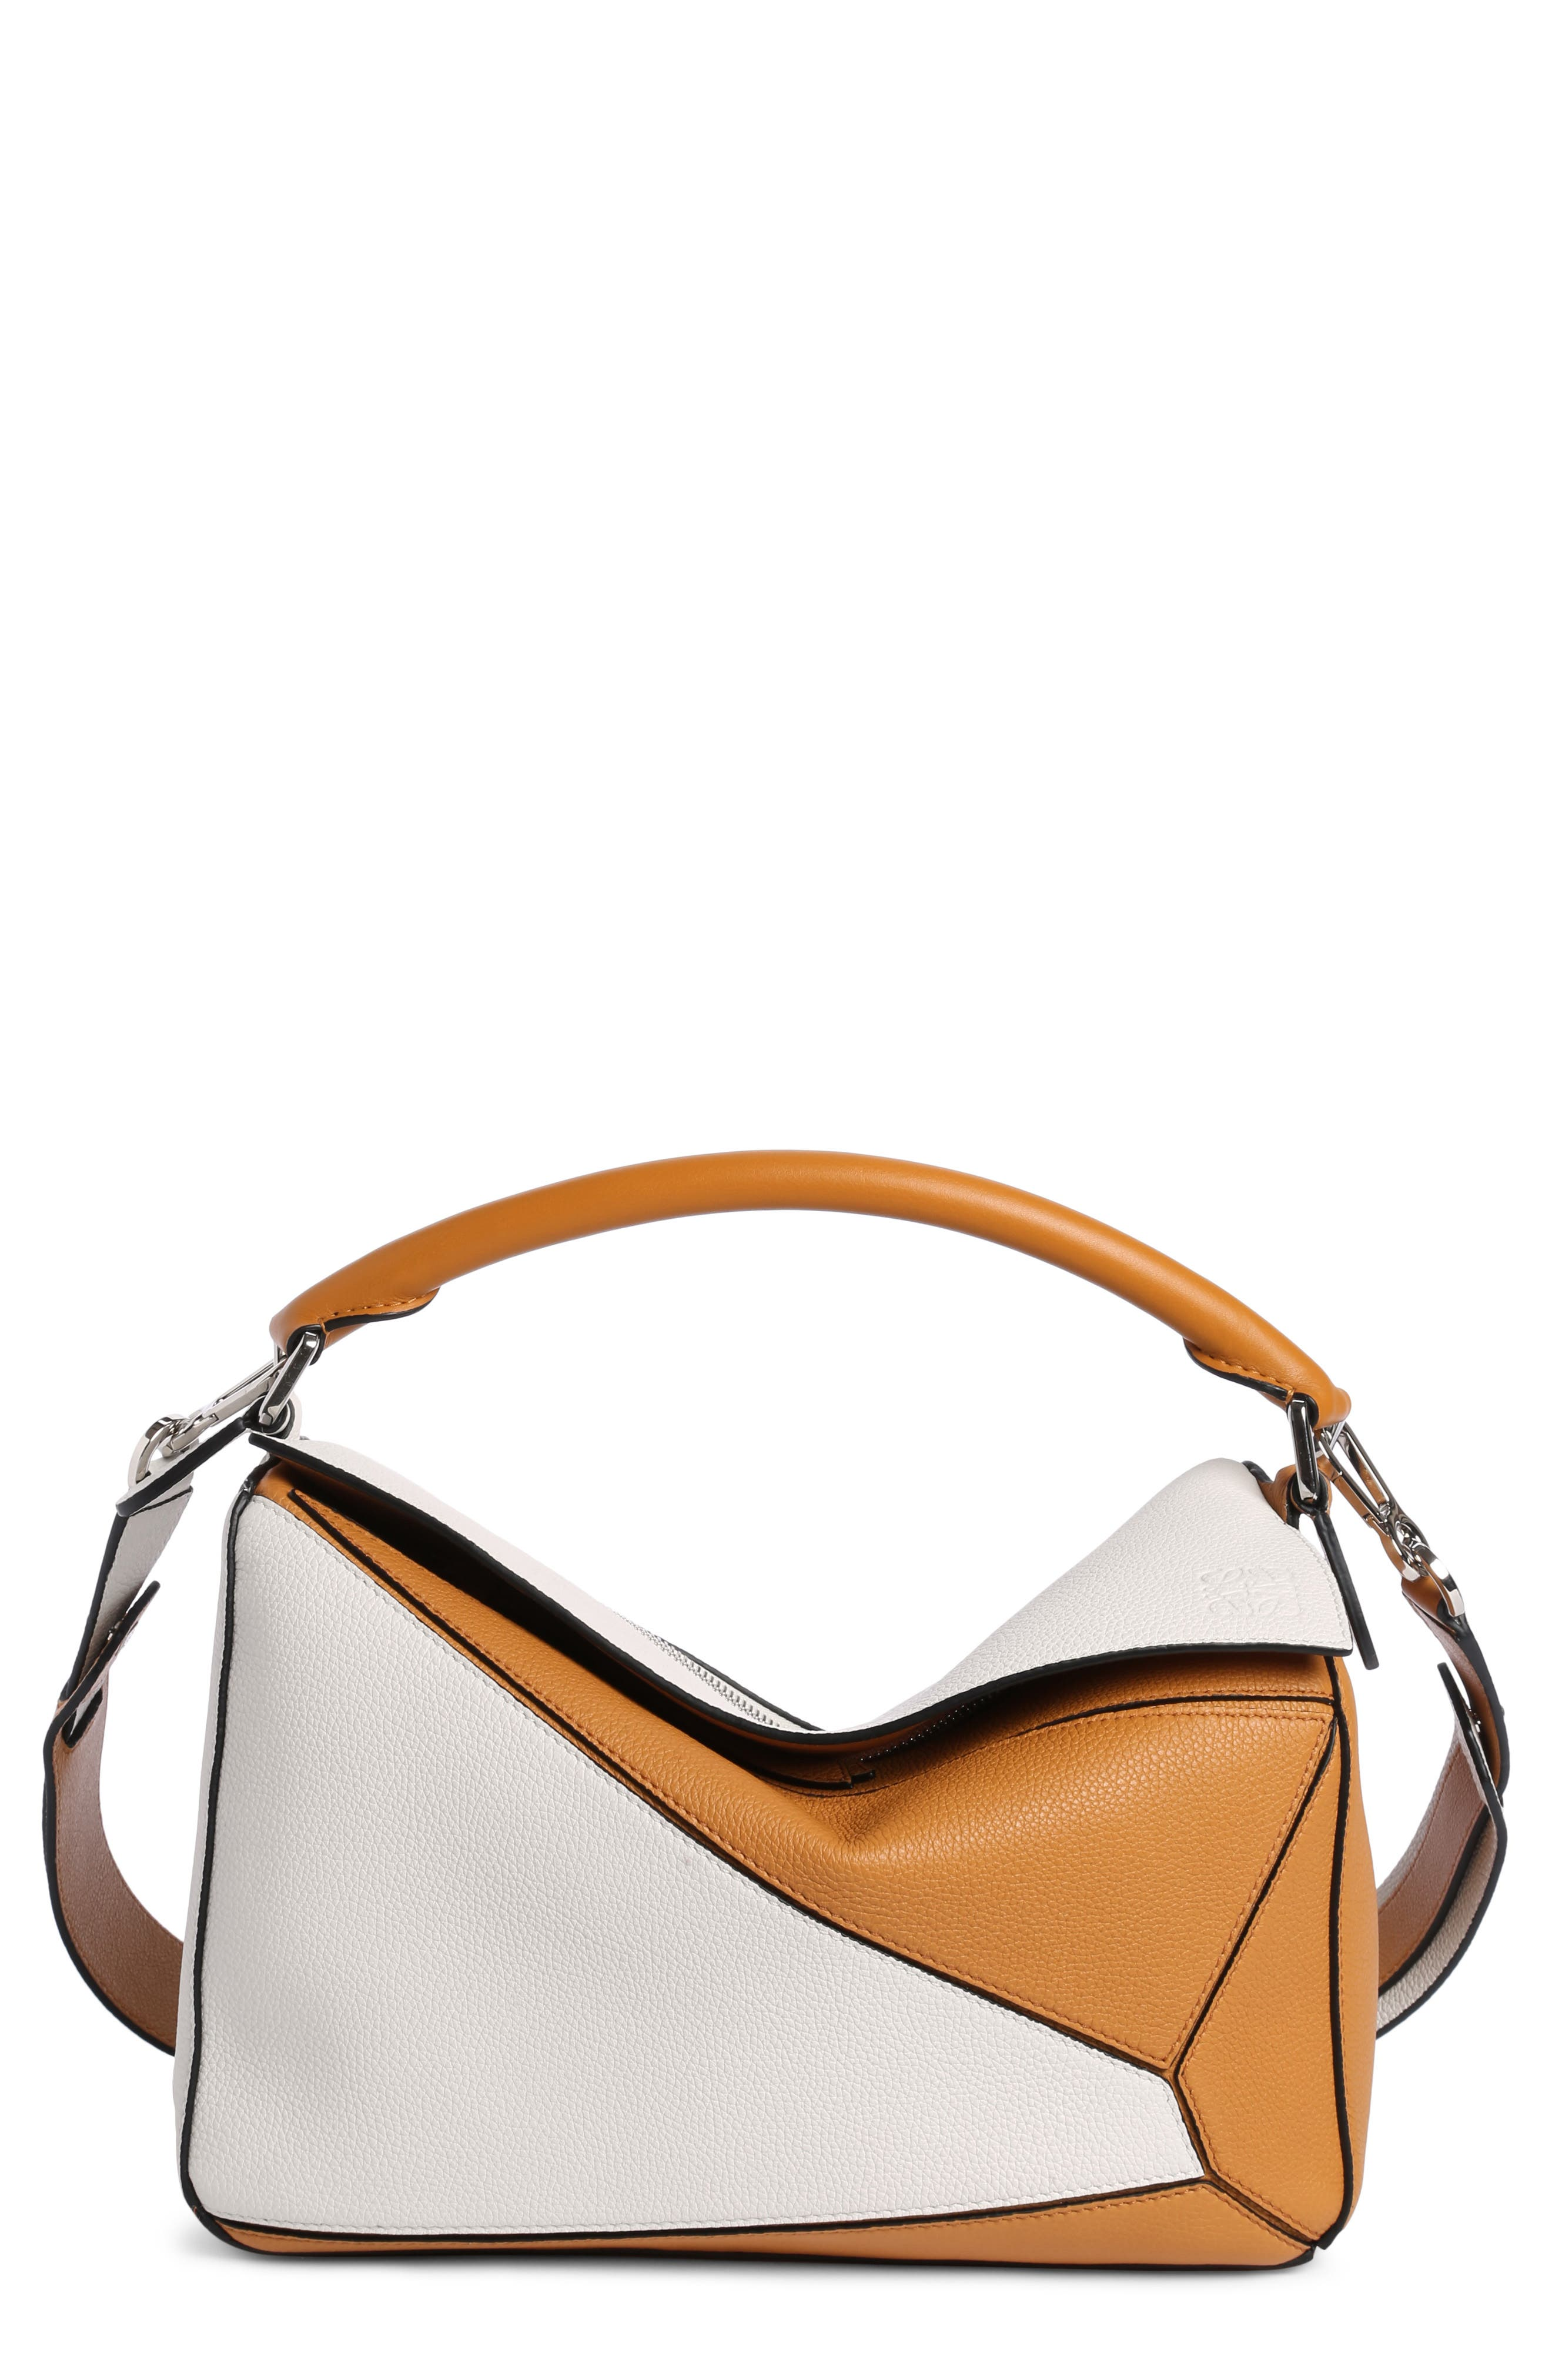 Puzzle Colorblock Calfskin Leather Bag,                         Main,                         color, Soft White/ Amber